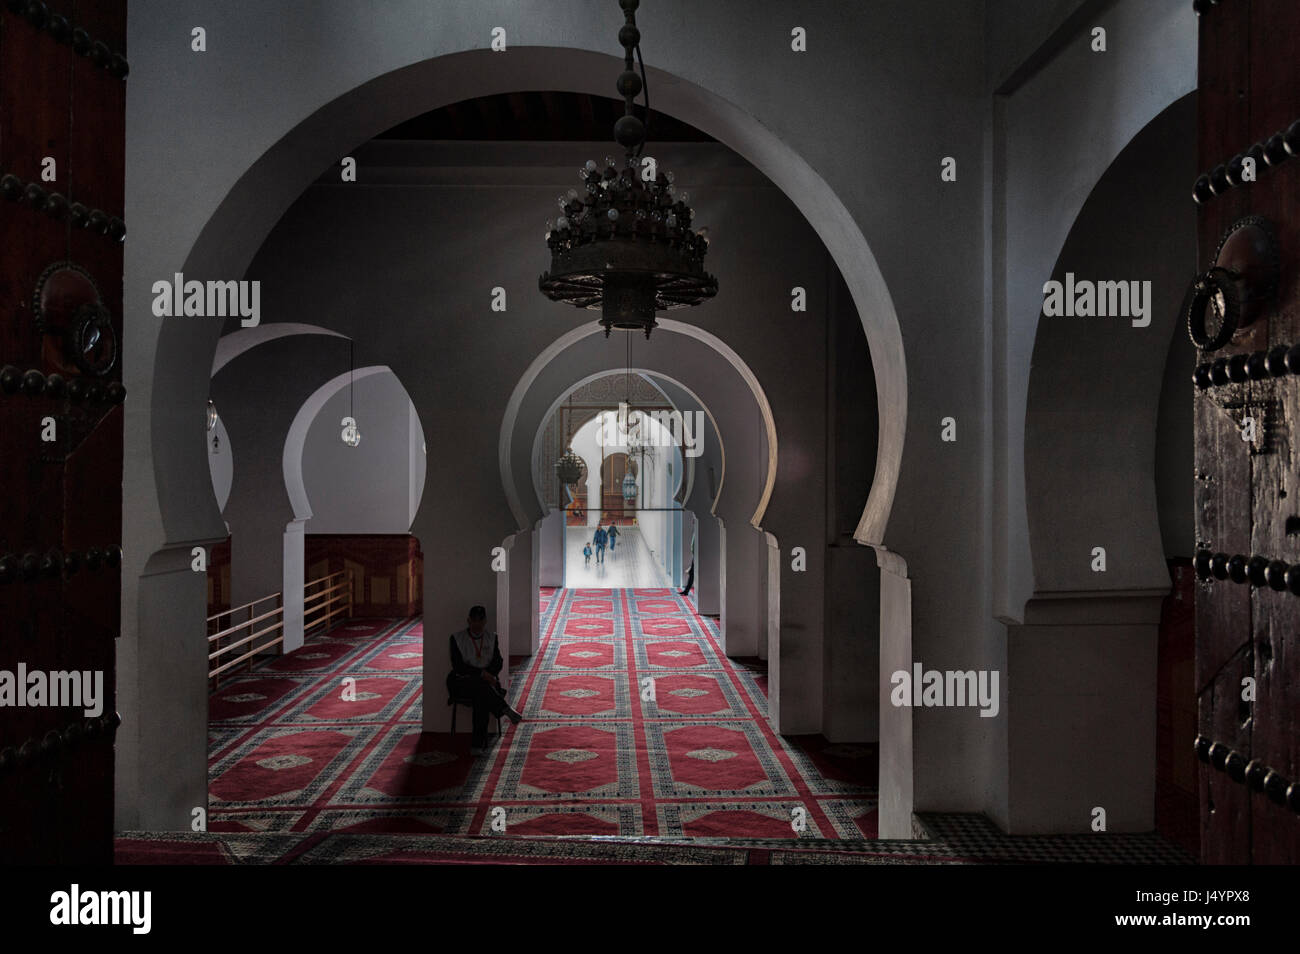 FEZ, MOROCCO - FEBRUARY 18, 2017: Unidentified people in the Mosque Qaraouiyine in the medina of Fez, Morocco - Stock Image